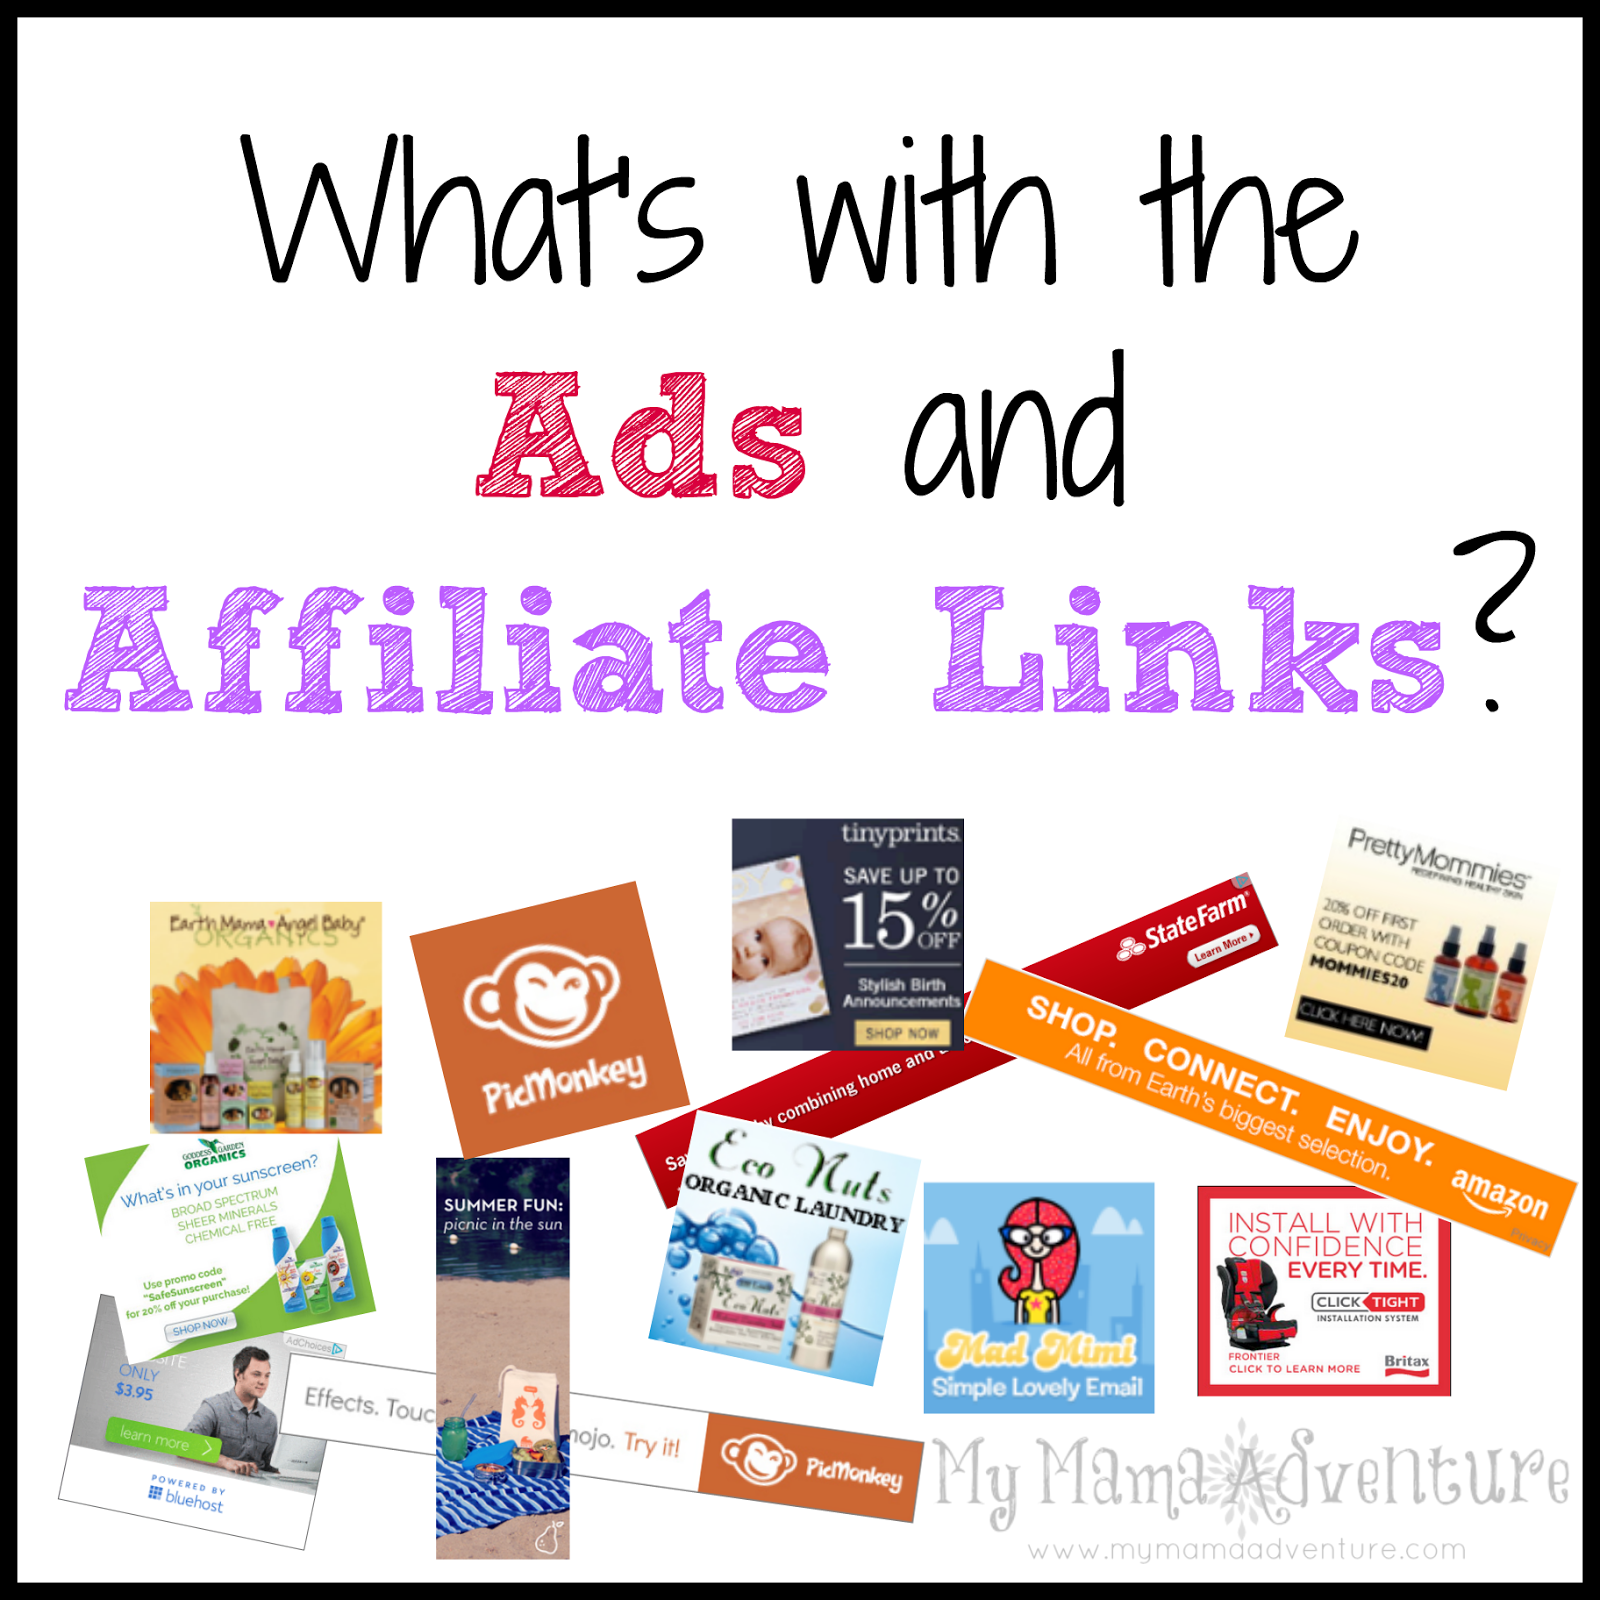 What's with the Ads and Affiliate Links? - My Mama Adventure